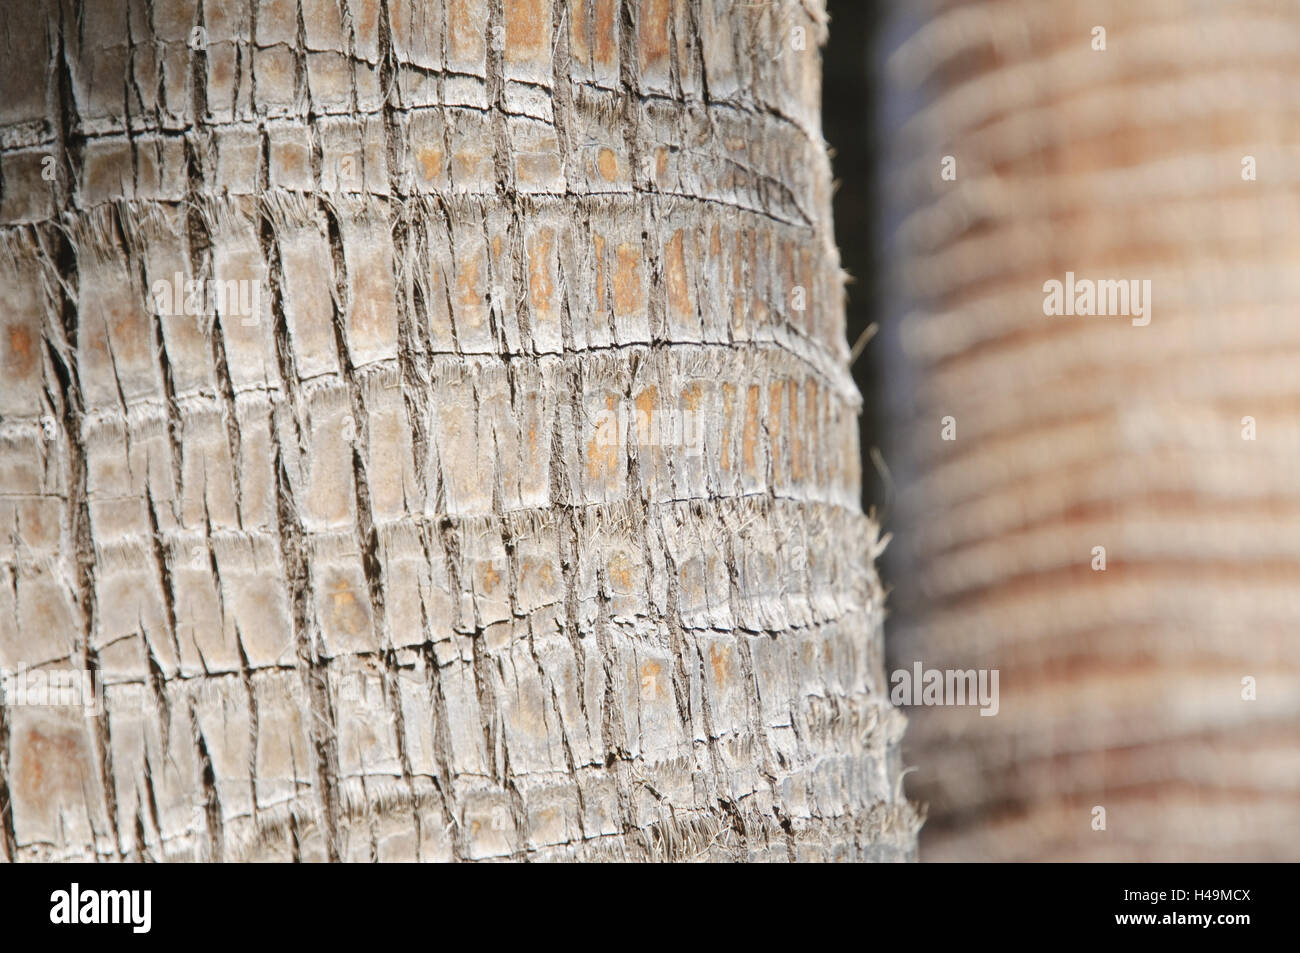 Palm strain, cortex, medium close-up, detail, Majorca, Spain, - Stock Image